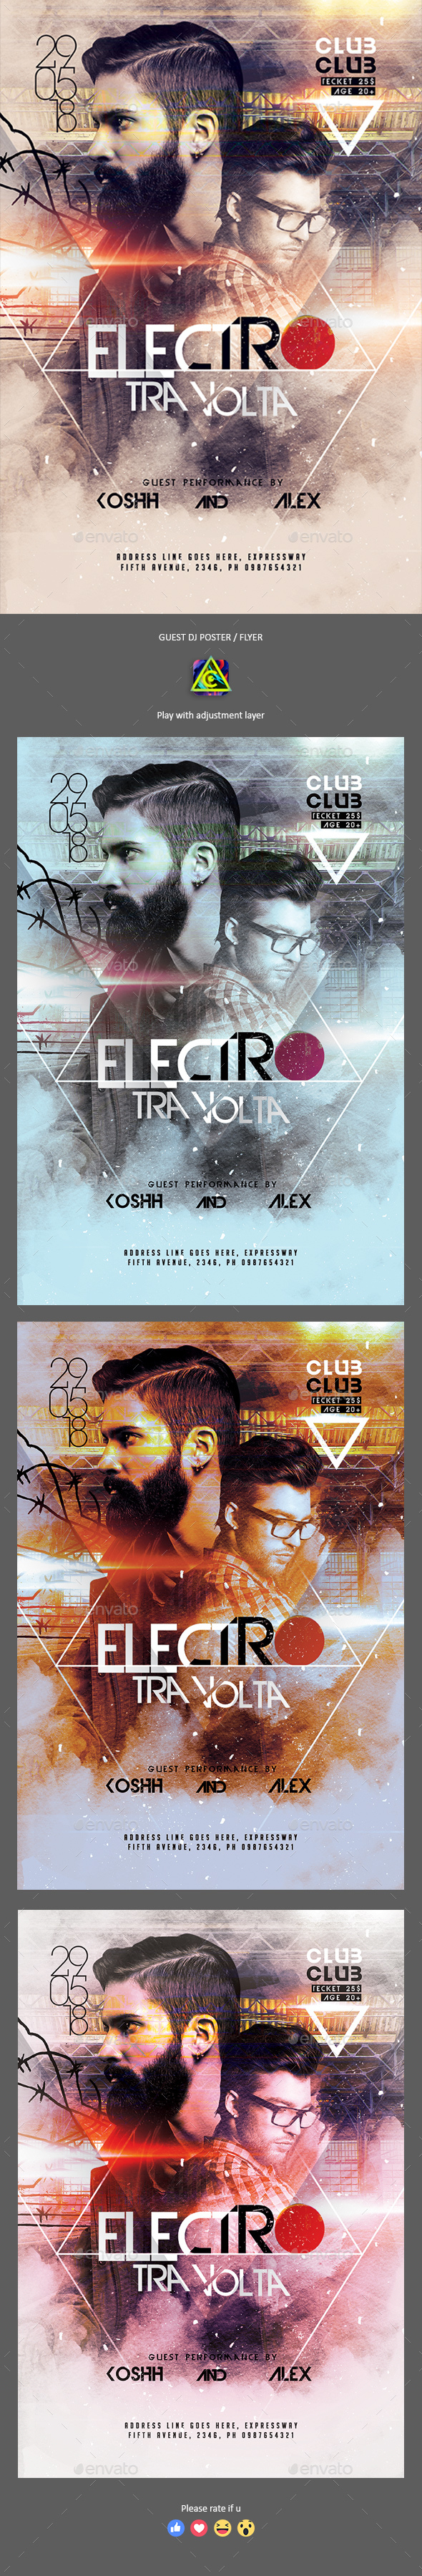 Guest Dj Party Poster / Flyer - Clubs & Parties Events